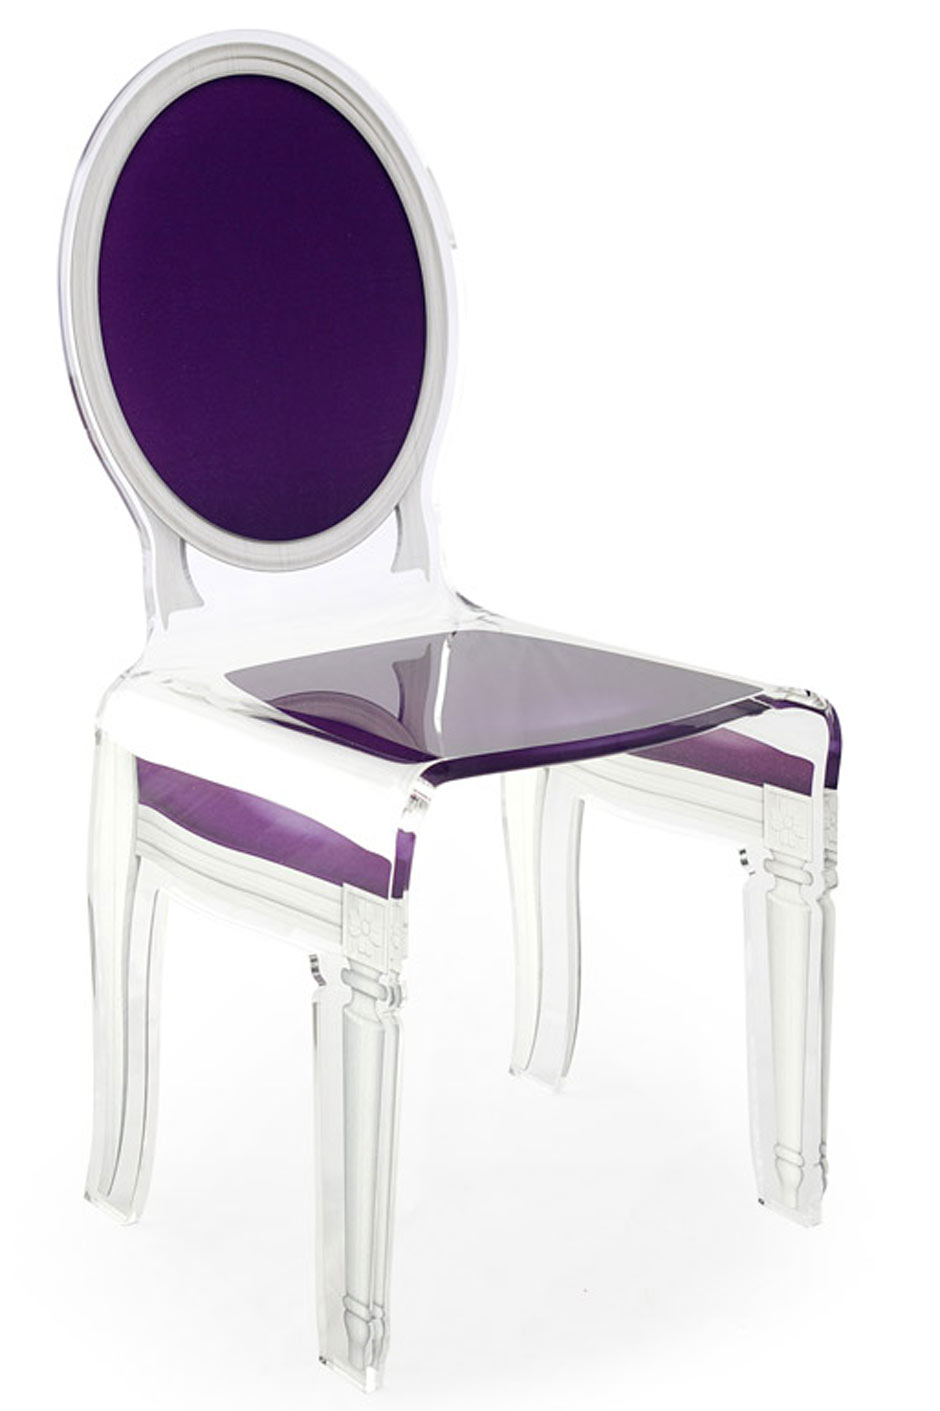 Discount Chaises Salle Manger Chaise Violette